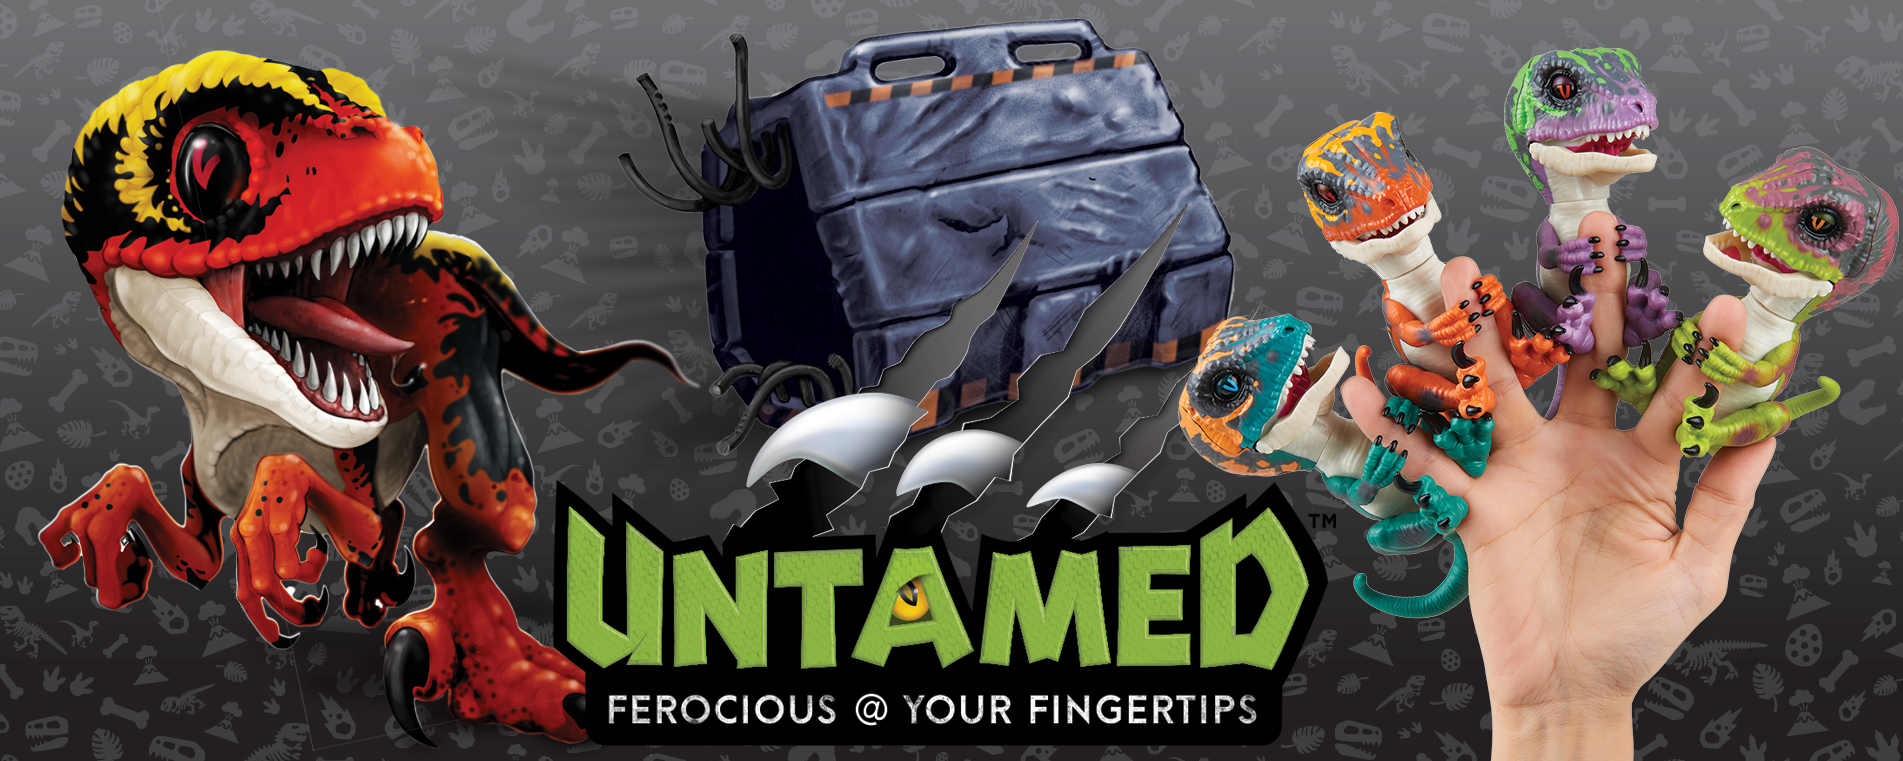 Fingerlings Untamed